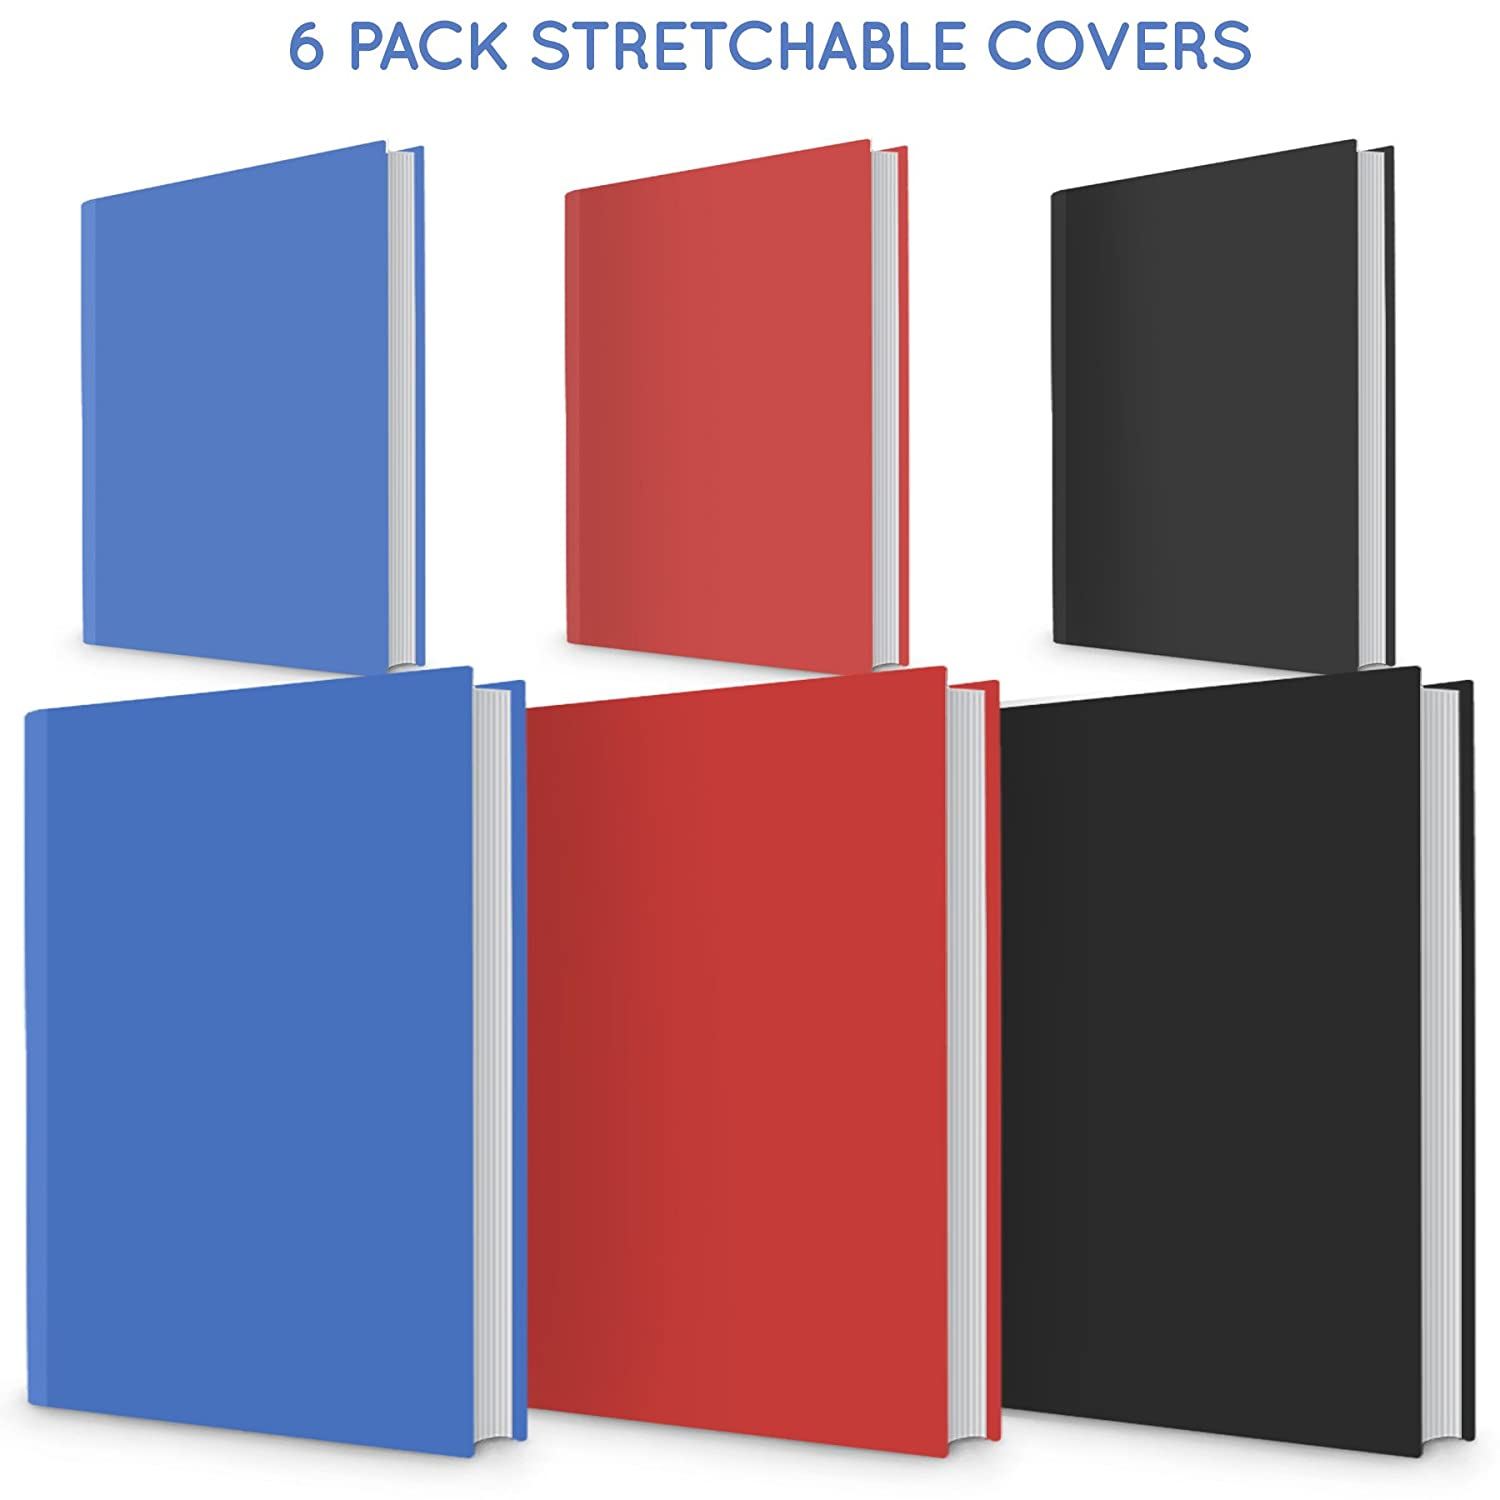 White Stretchable Book Cover : Pack book cover stretchable and great value text